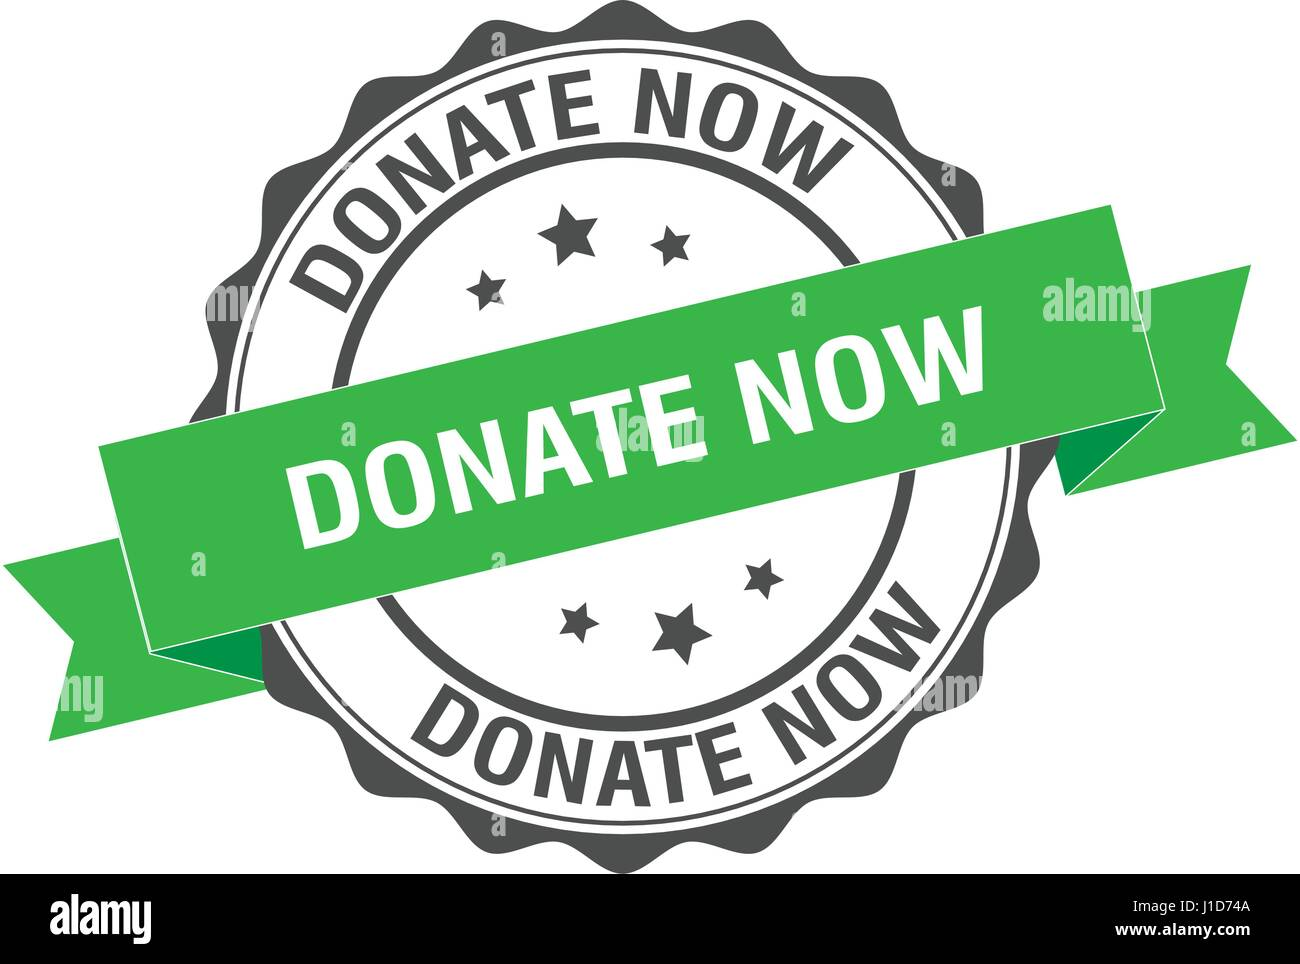 Donate now stamp illustration - Stock Image